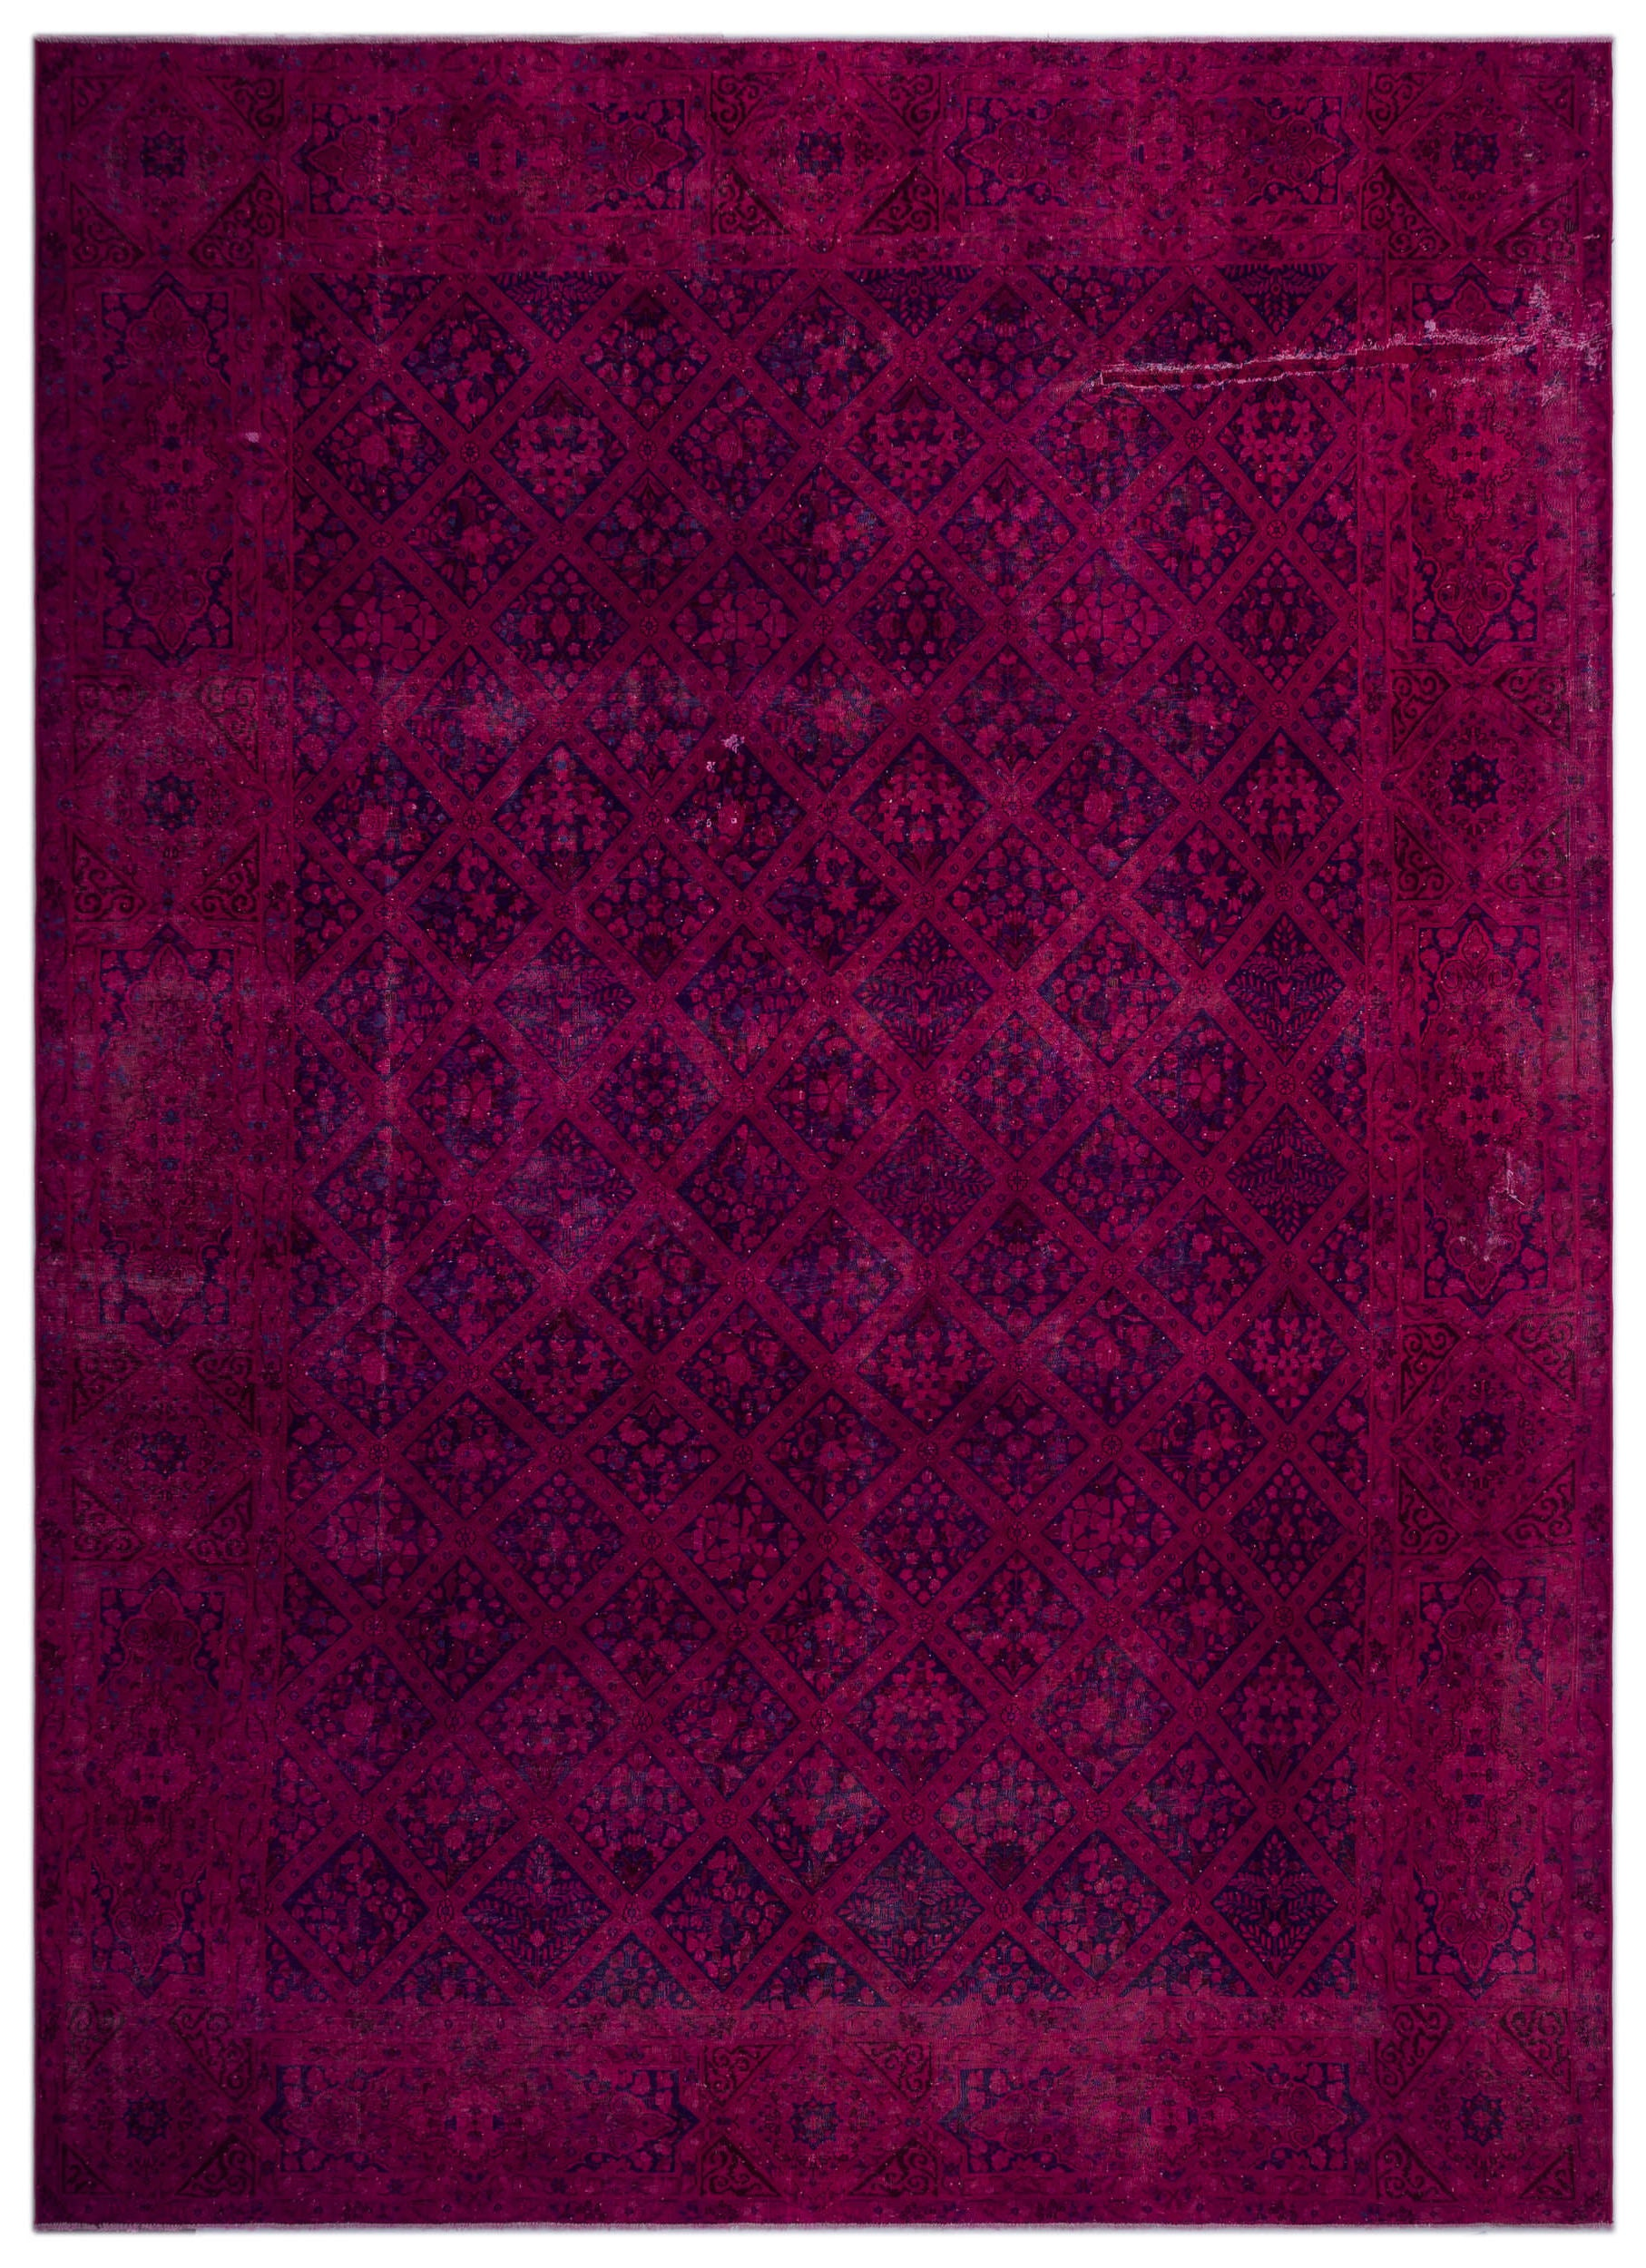 Fuchsia Over Dyed Vintage XLarge Rug 11'1'' x 15'5'' ft 337 x 470 cm